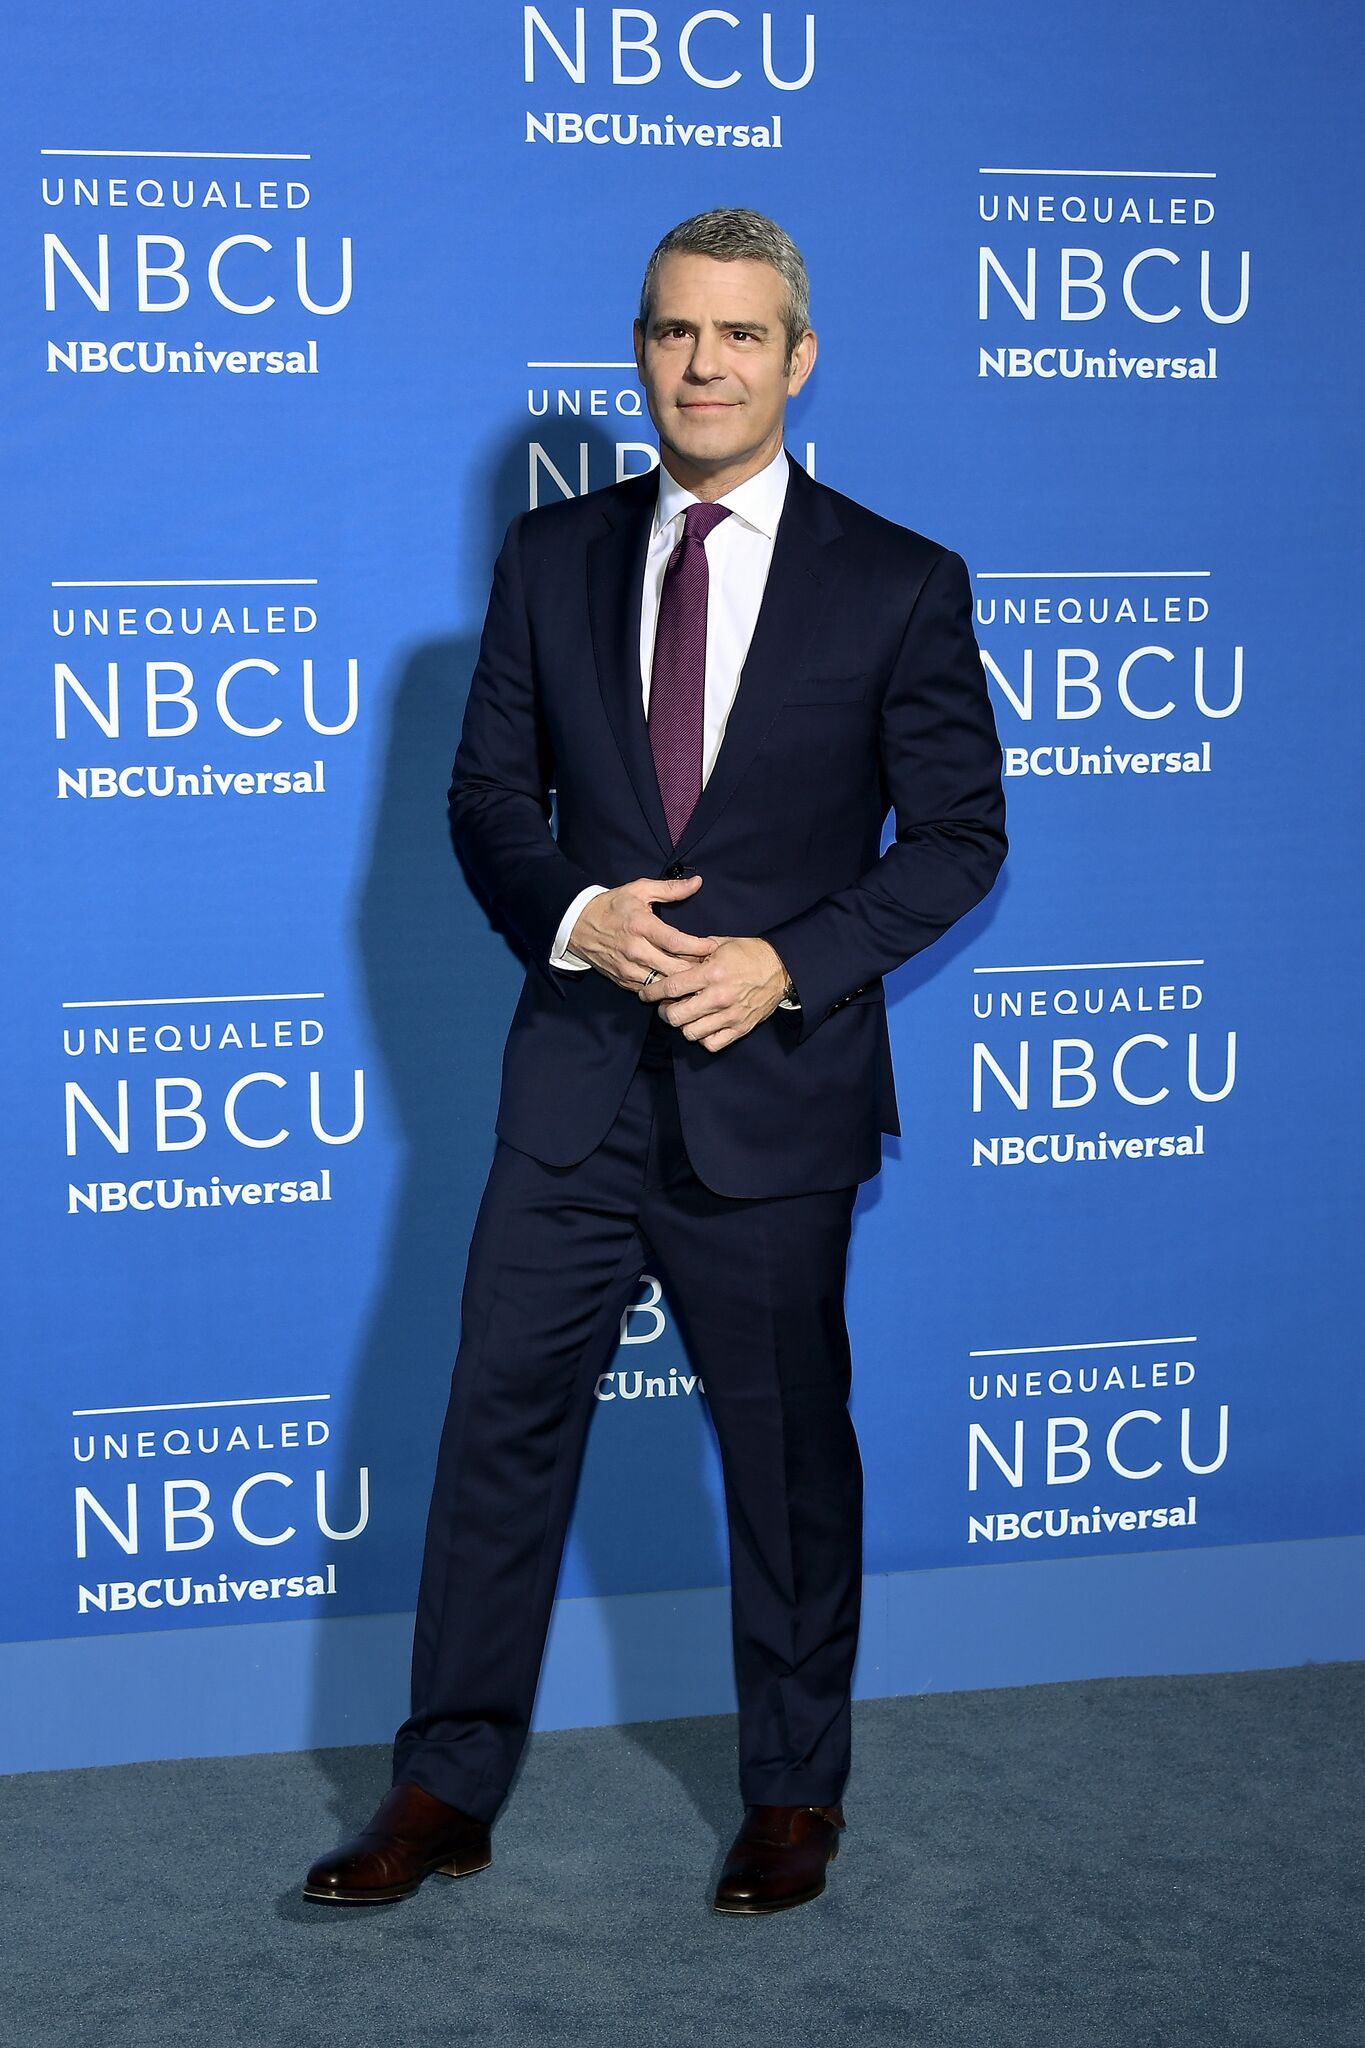 Andy Cohen posing for picture at NBCU event | Getty Images